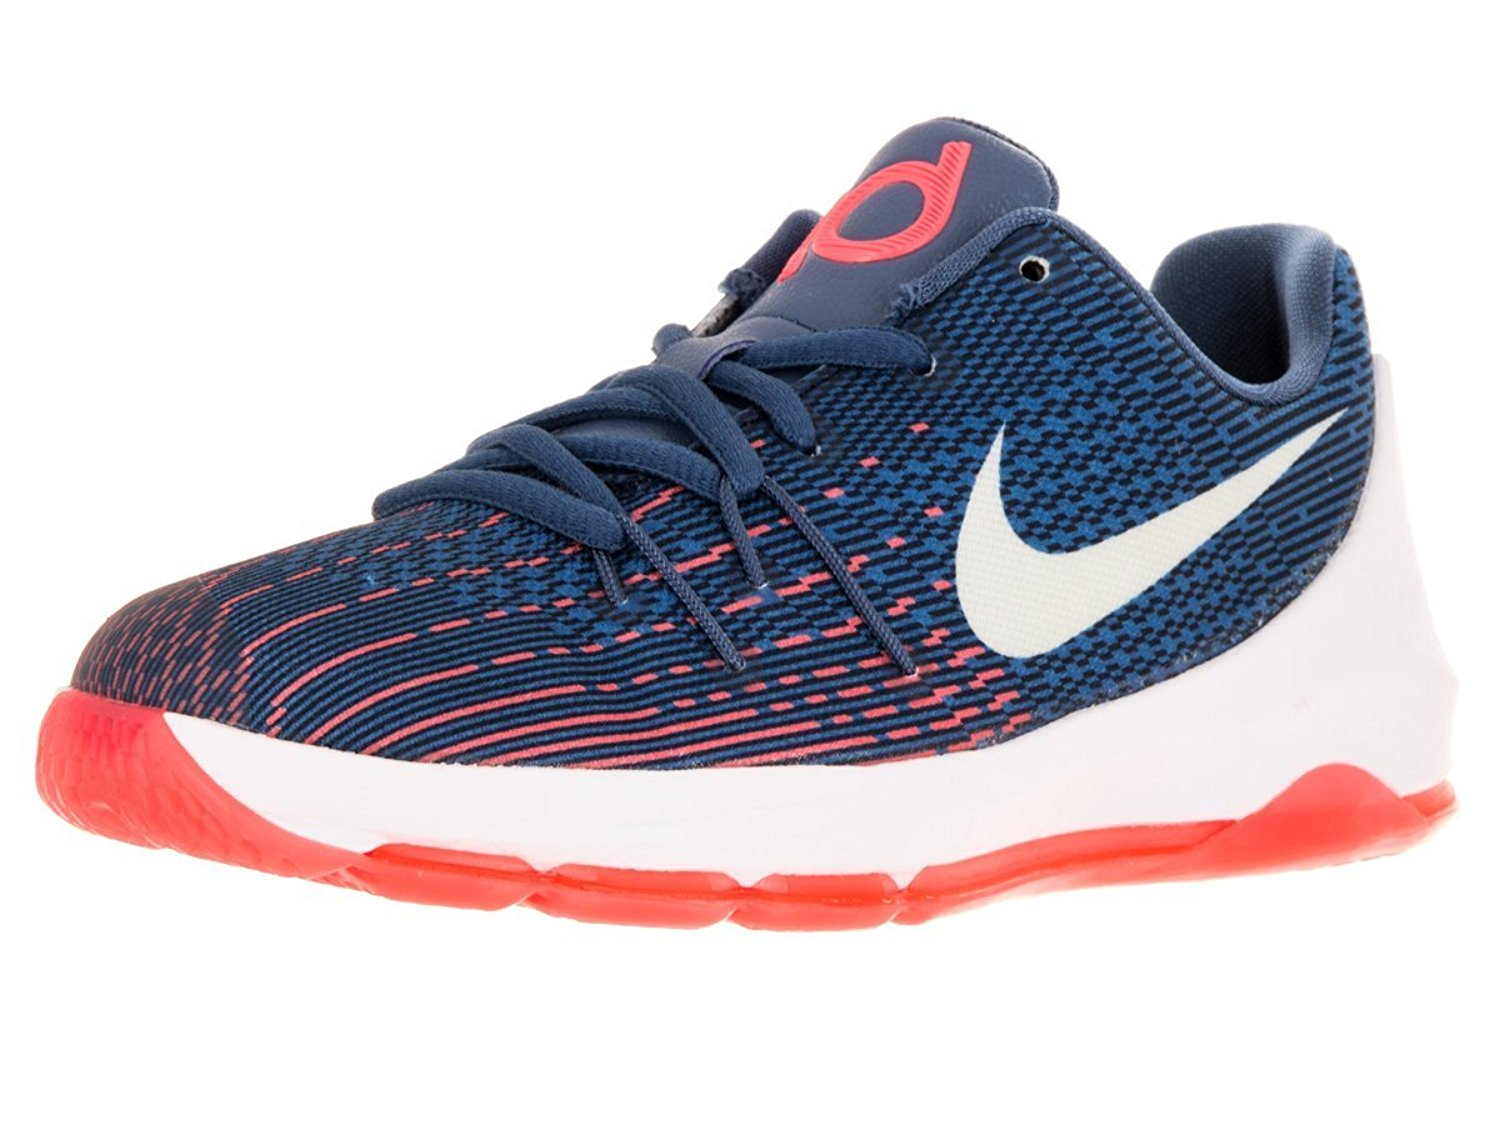 kd 8 youth basketball shoe image